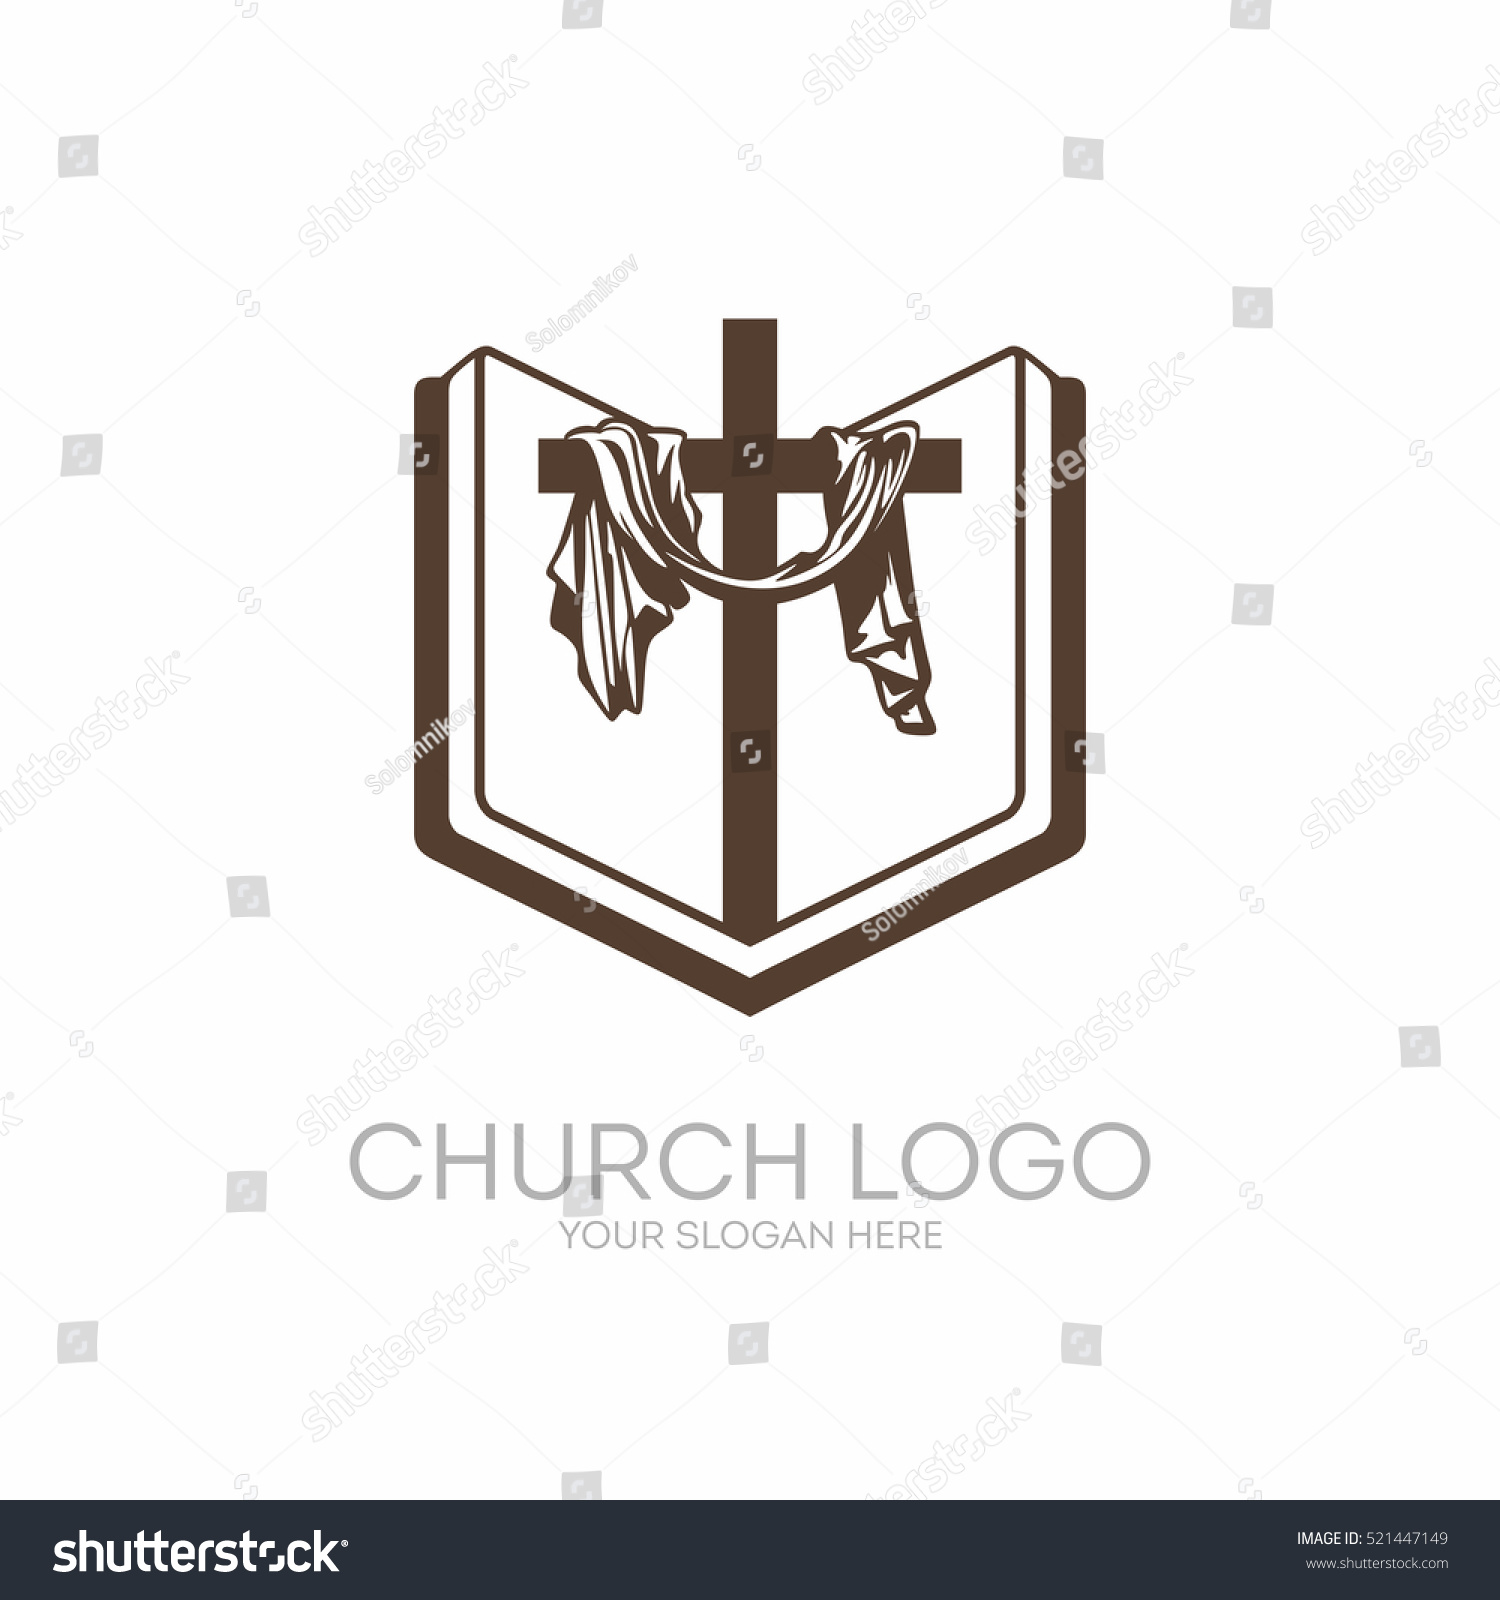 Church logo christian symbols bible holy stock vector 521447149 church logo christian symbols bible holy scripture the cross of jesus christ buycottarizona Image collections